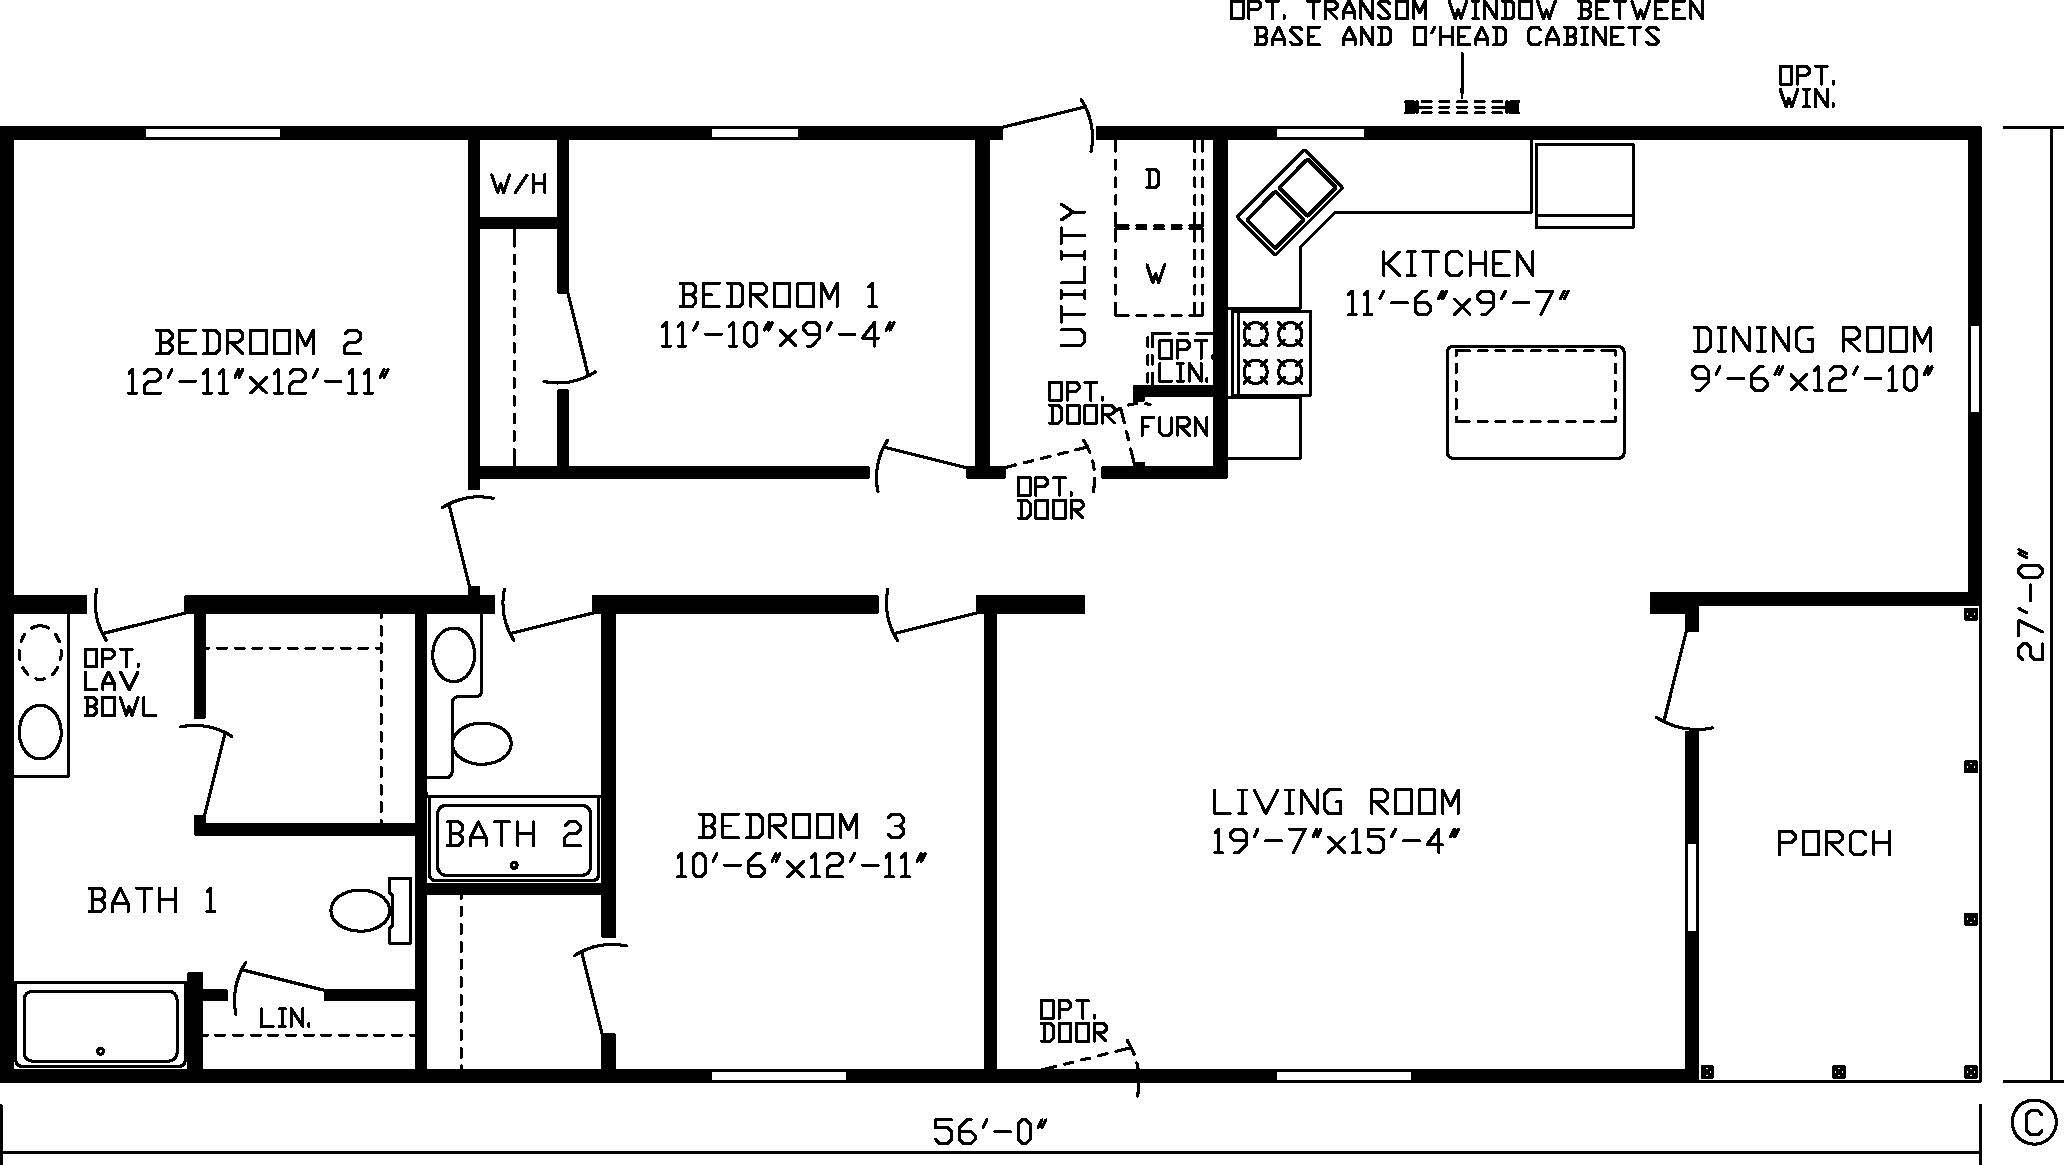 20 X 60 Homes Floor Plans Google Search Mobile Home Floor Plans House Plans House Floor Plans